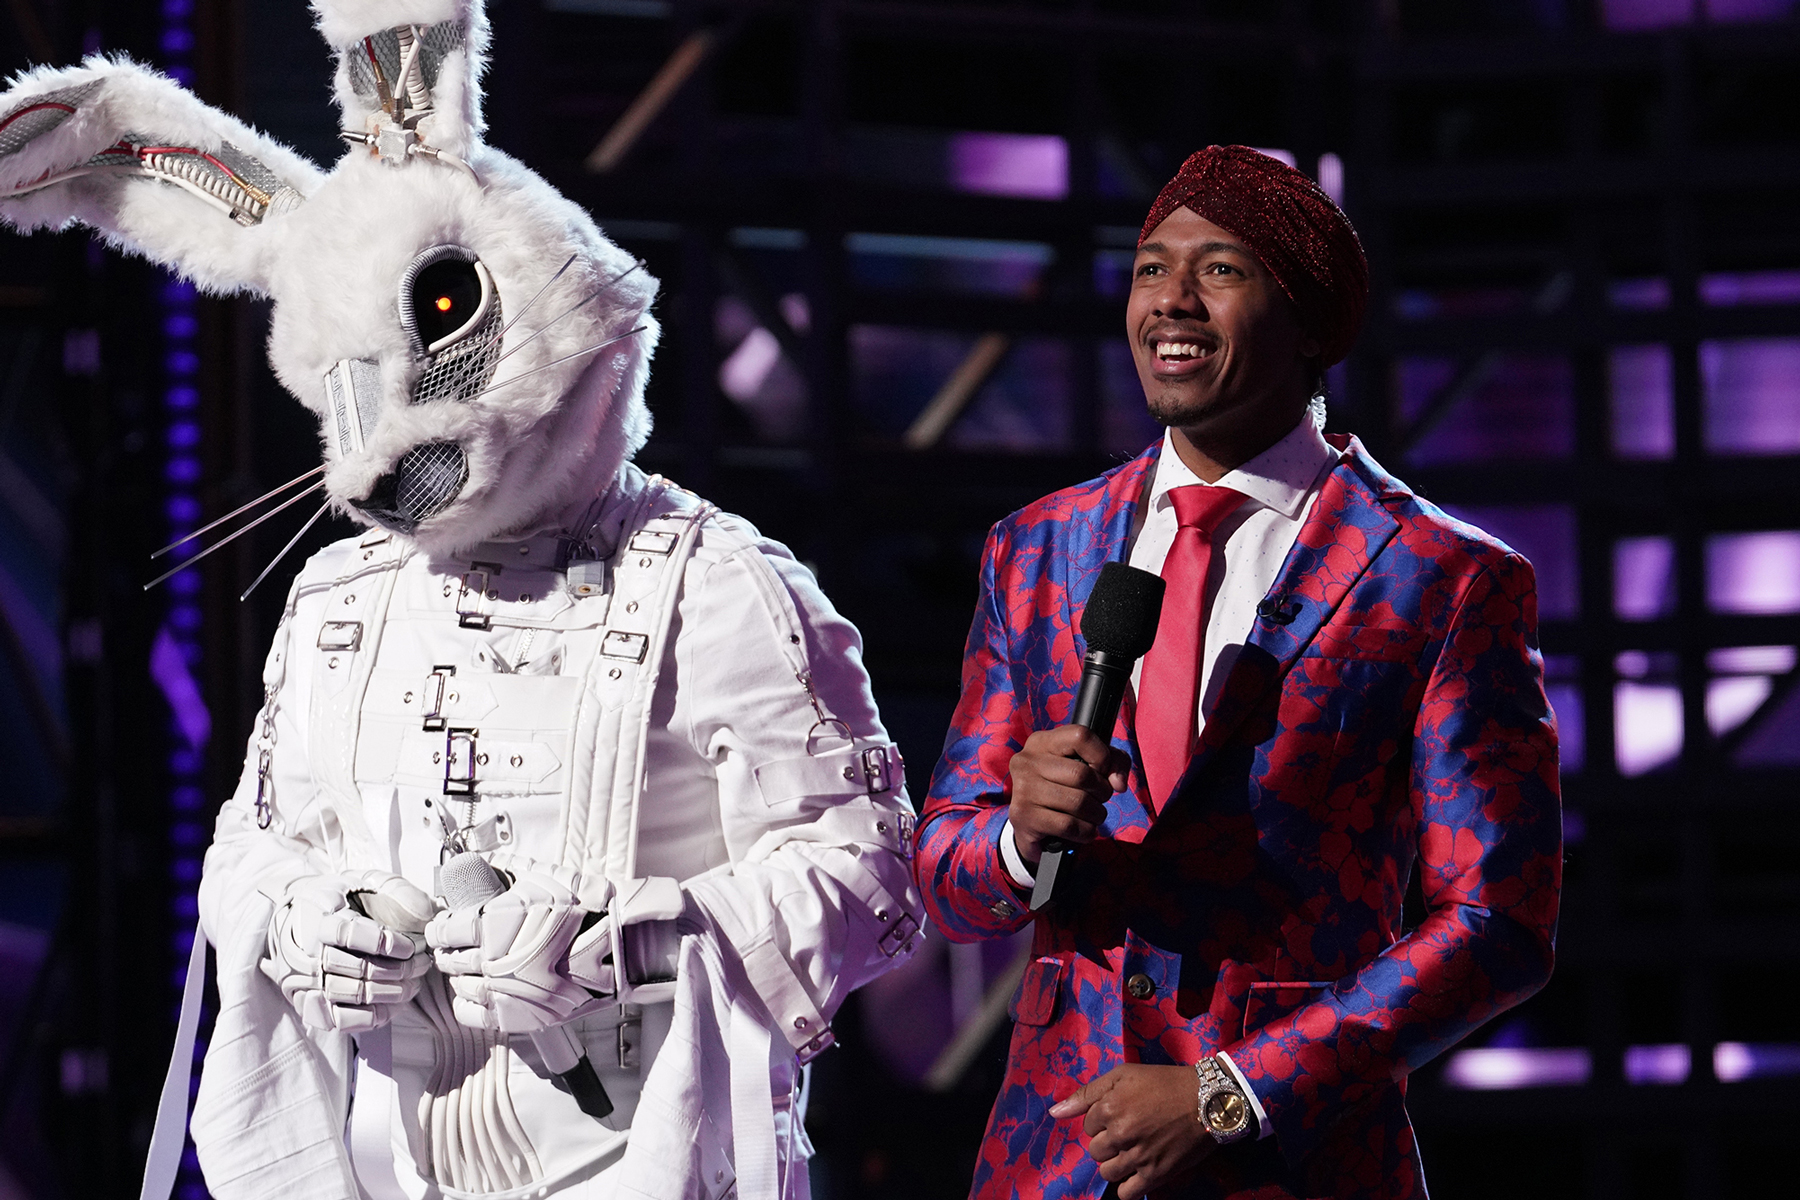 """THE MASKED SINGER: L-R: Rabbit and host Nick Cannon in the """"Another Mask Bites the Dust"""" airing Wednesday, Jan. 23 (9:00-10:00 PM ET/PT) on FOX. © 2019 FOX Broadcasting.  Cr: Michael Becker / FOX."""